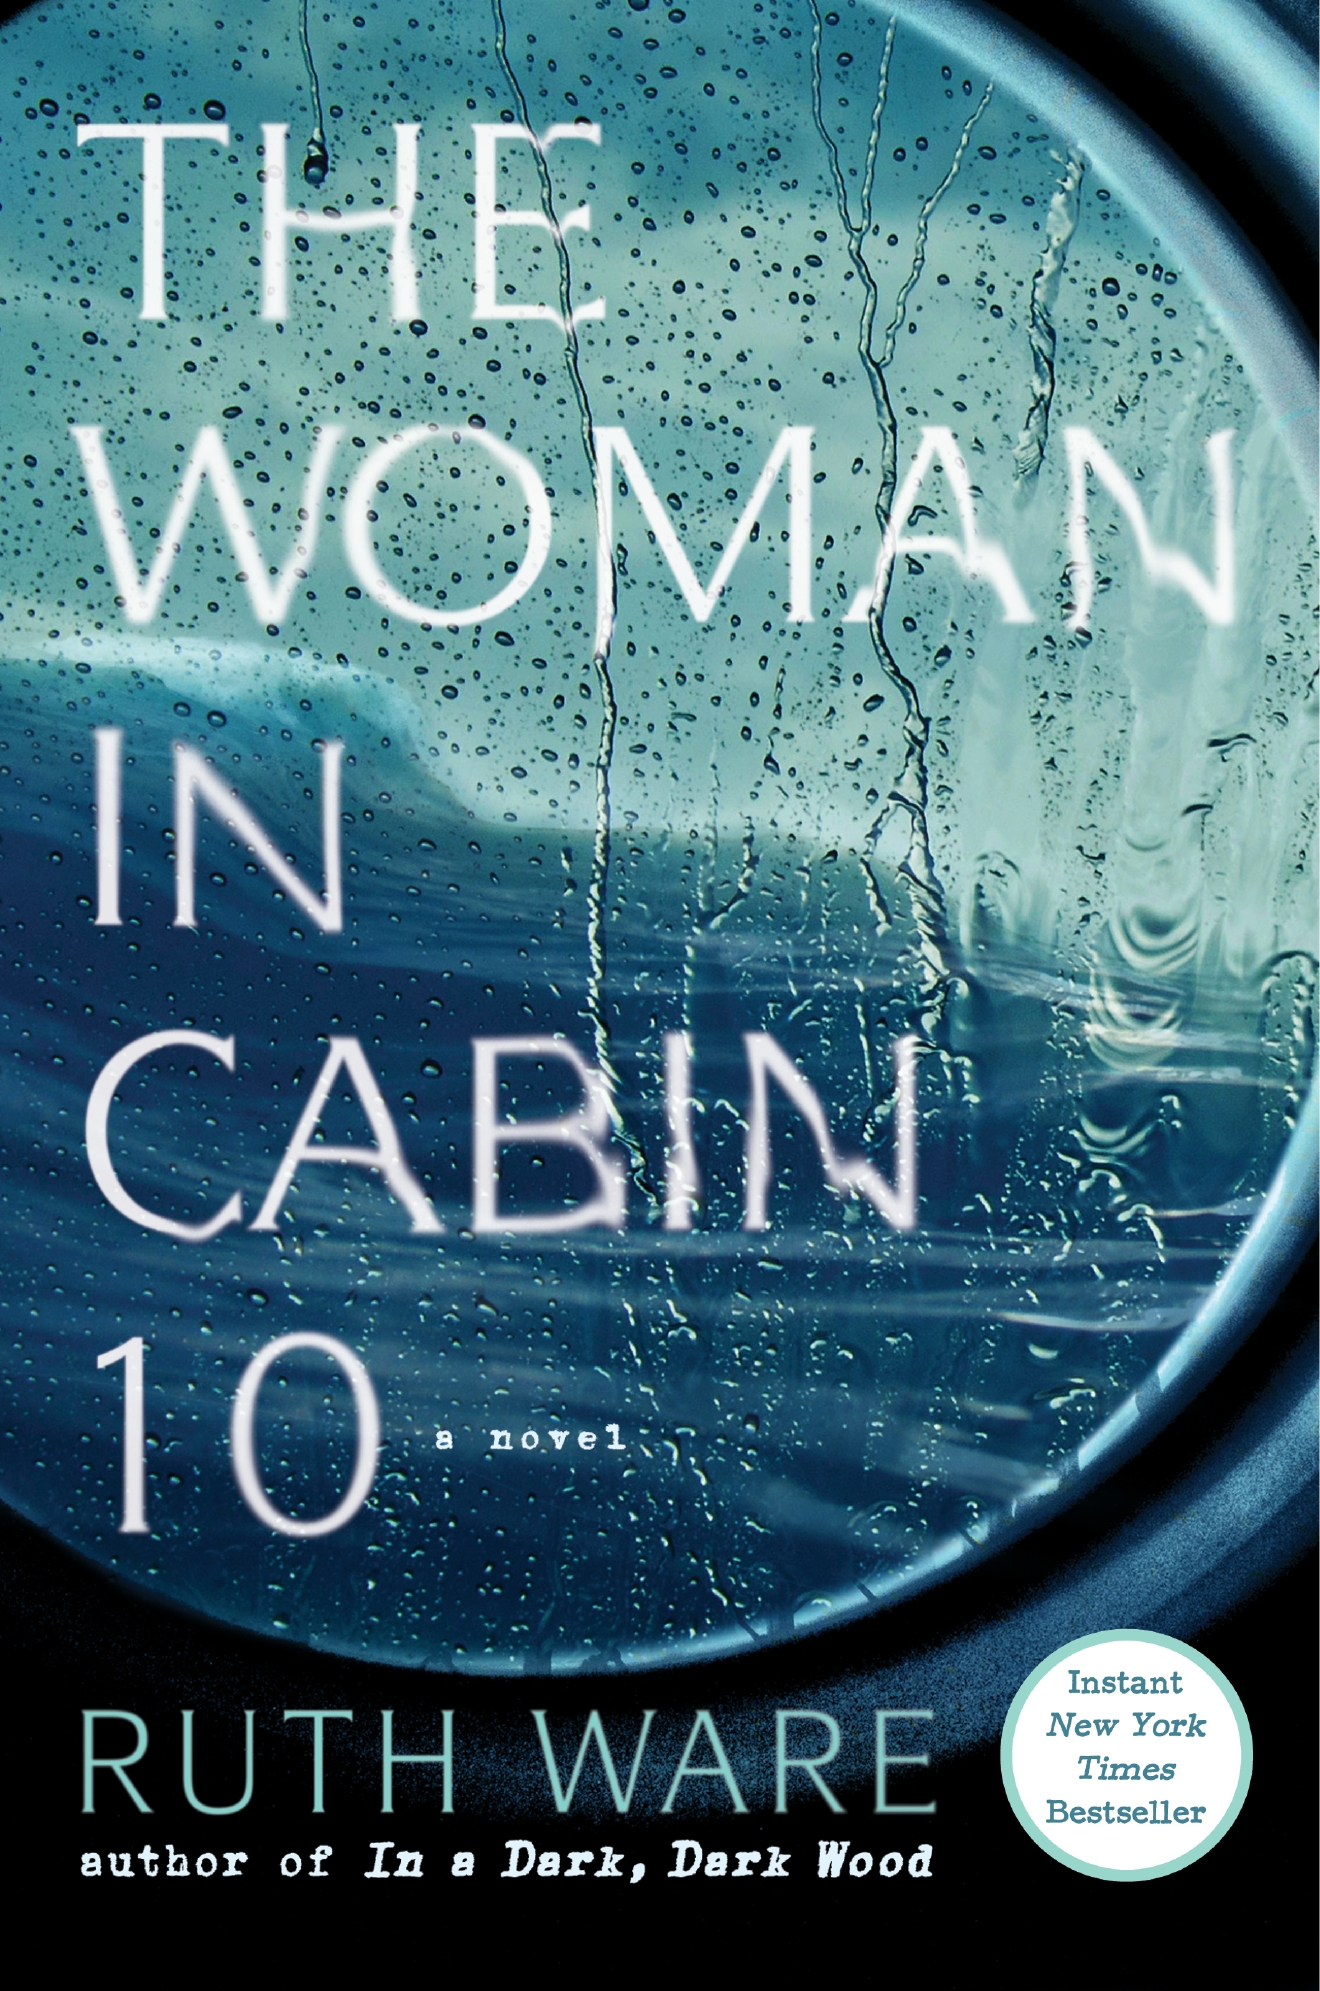 The Woman in Cabin 10, by Ruth Ware (Image: Courtesy Gallery/Scout Press)